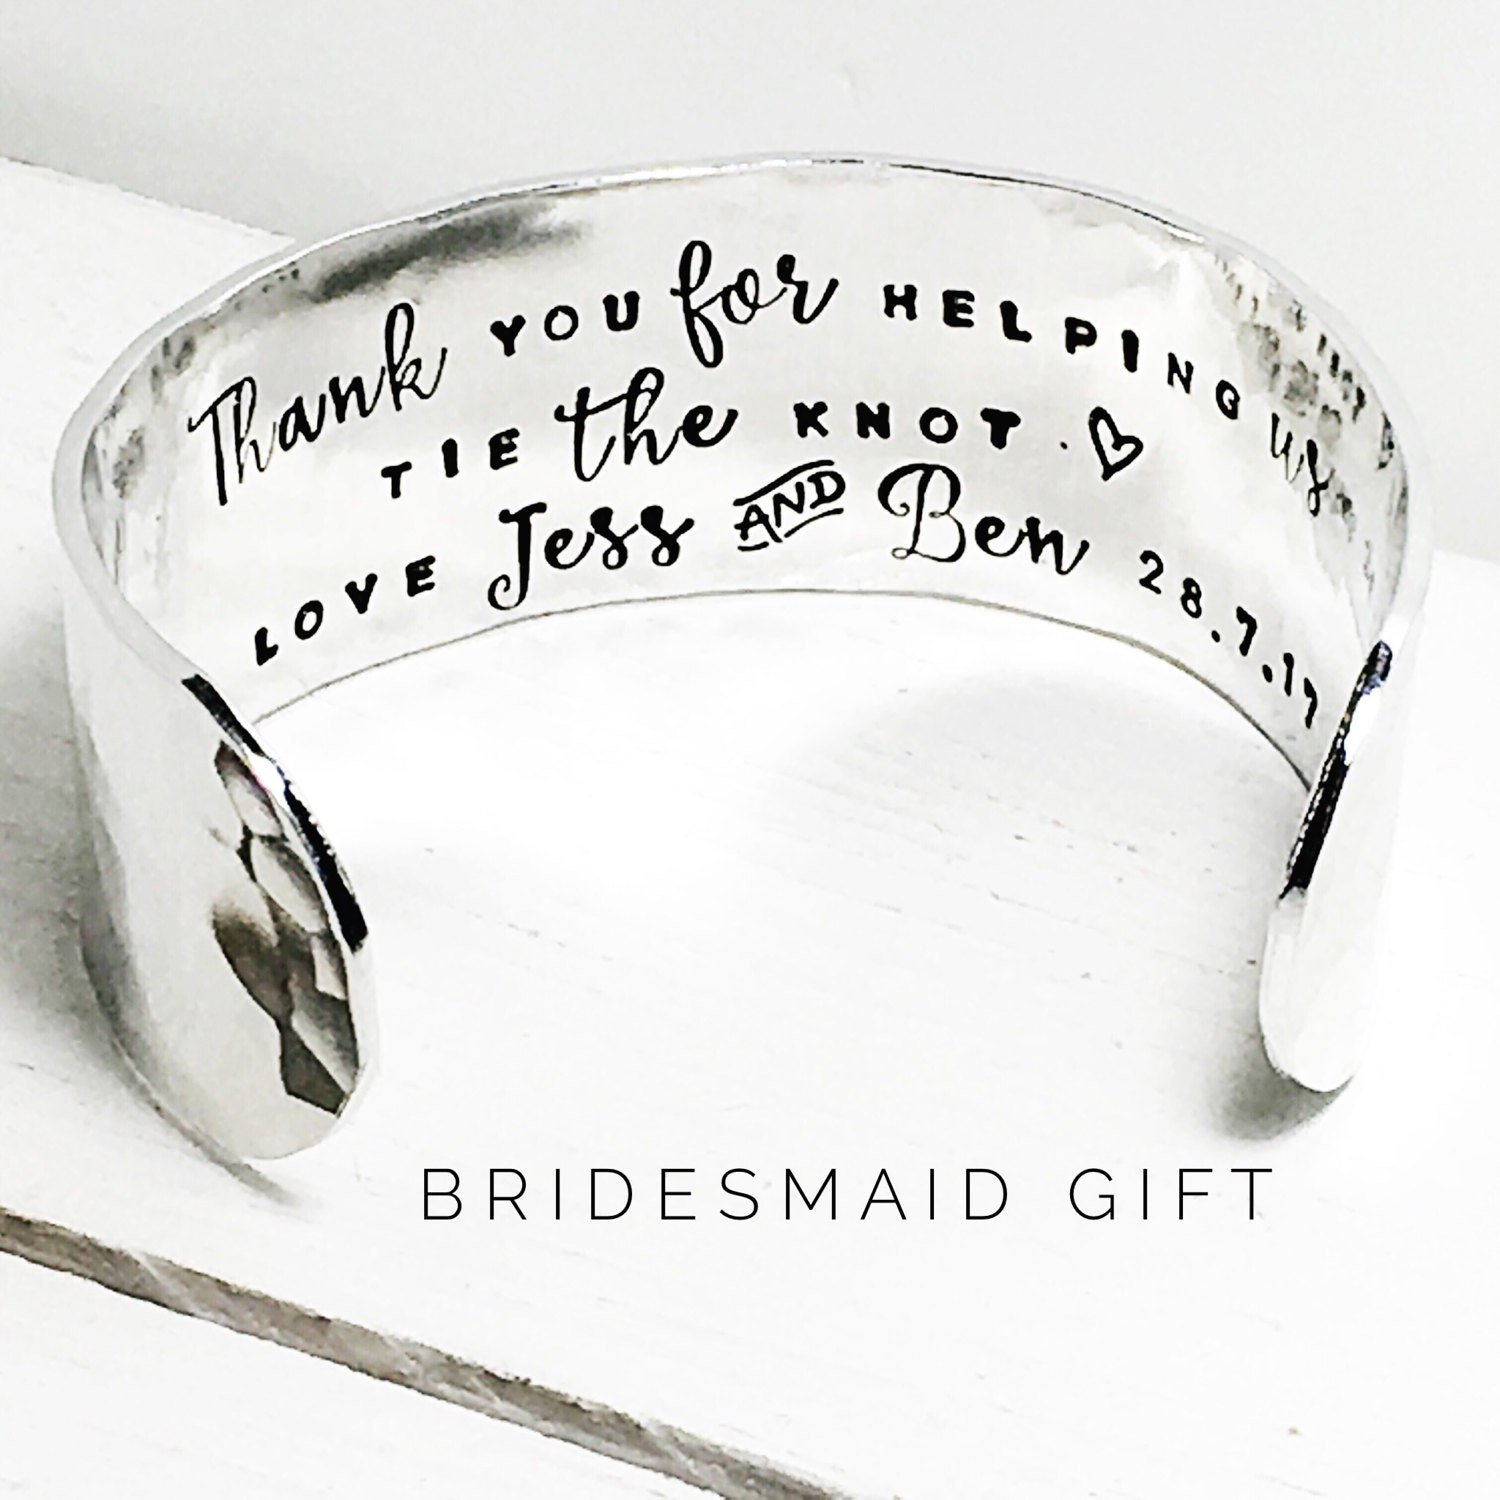 Bridesmaid gift  Bridesmaid gift ideas  Personalized Bridesmaids  Gift ideas for Bridesmaids Thank you for helping us tie the knot (W270)